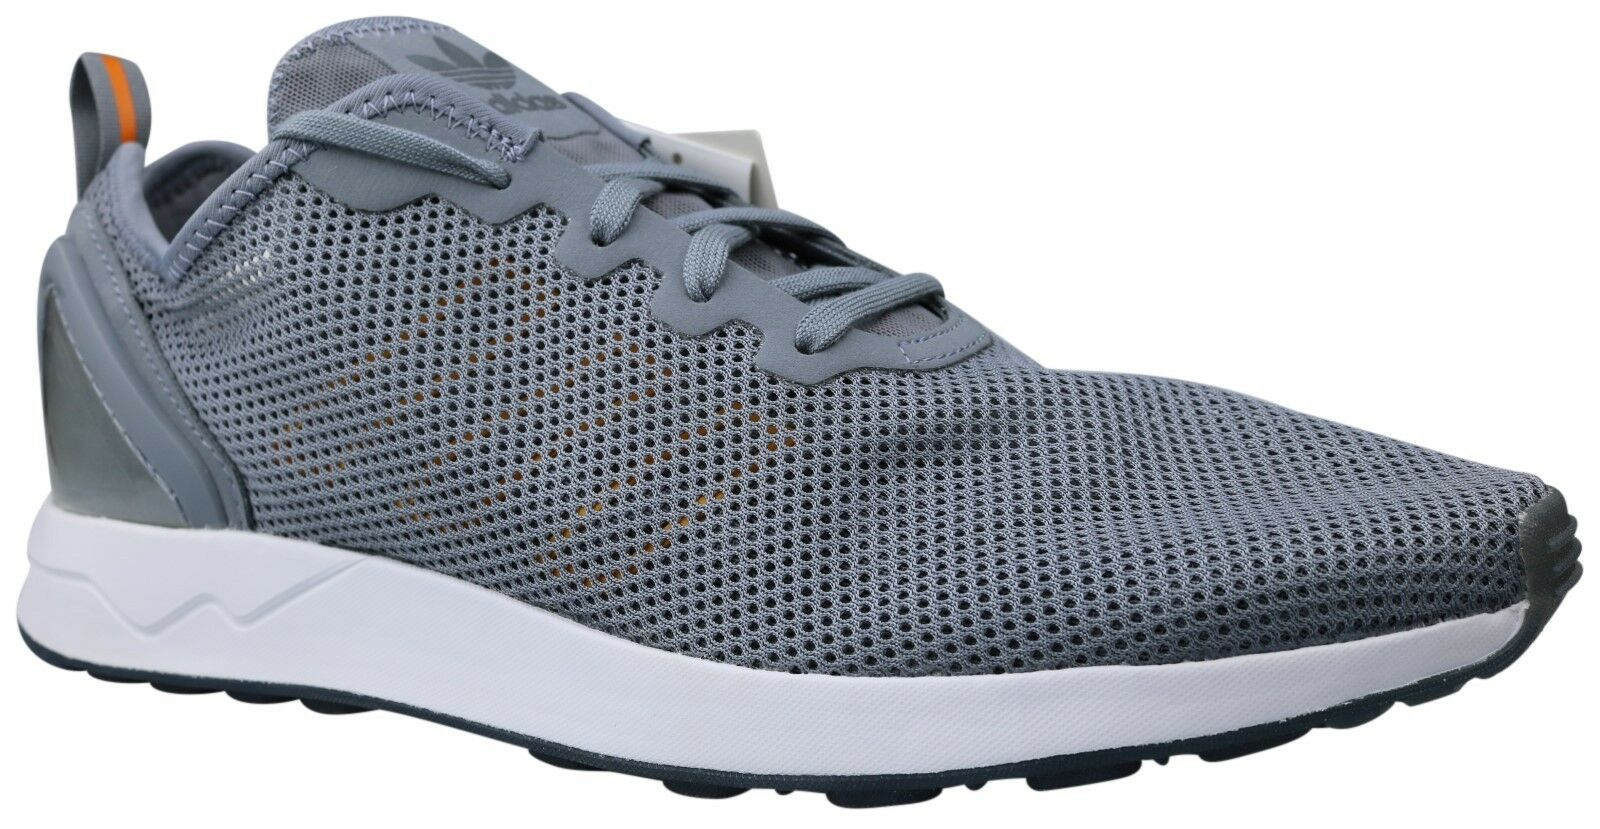 Adidas Originals ZX Flux ADV Super Lite zapatilla de deporte zapatos s76554 Talla 39 - 45 NEW OVP